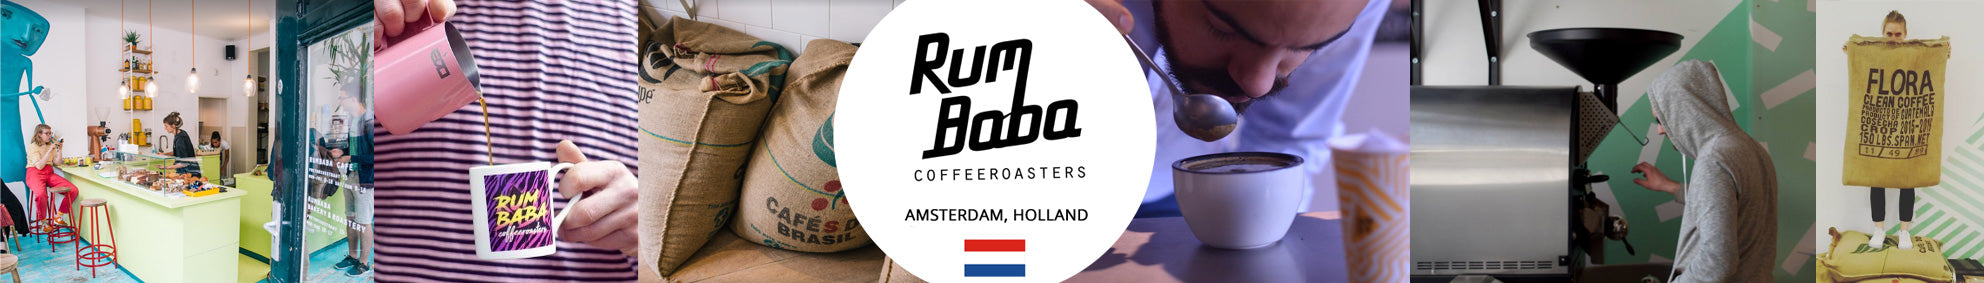 Rum Baba Coffee Roaster Amsterdam UK Coffee Subscription